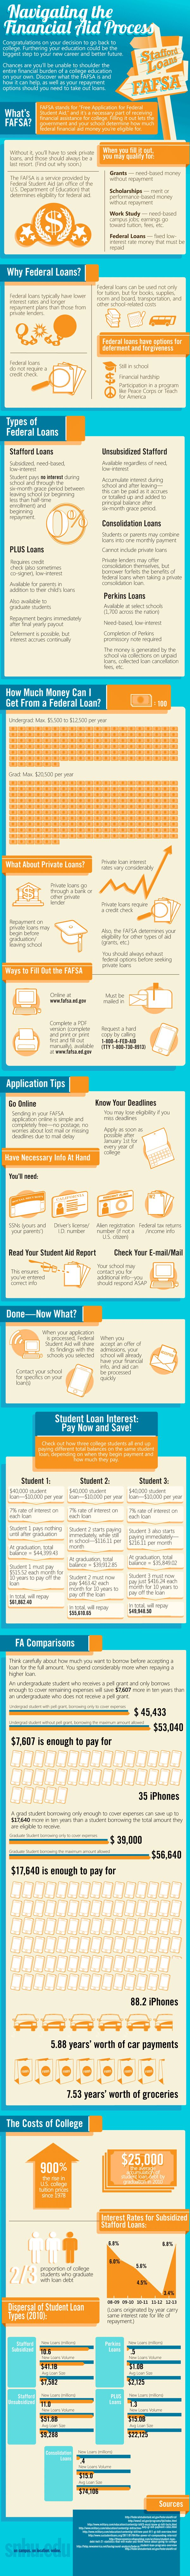 Navigating the financial aid system infographic by Southern New Hampshire University, SNHU.EDU